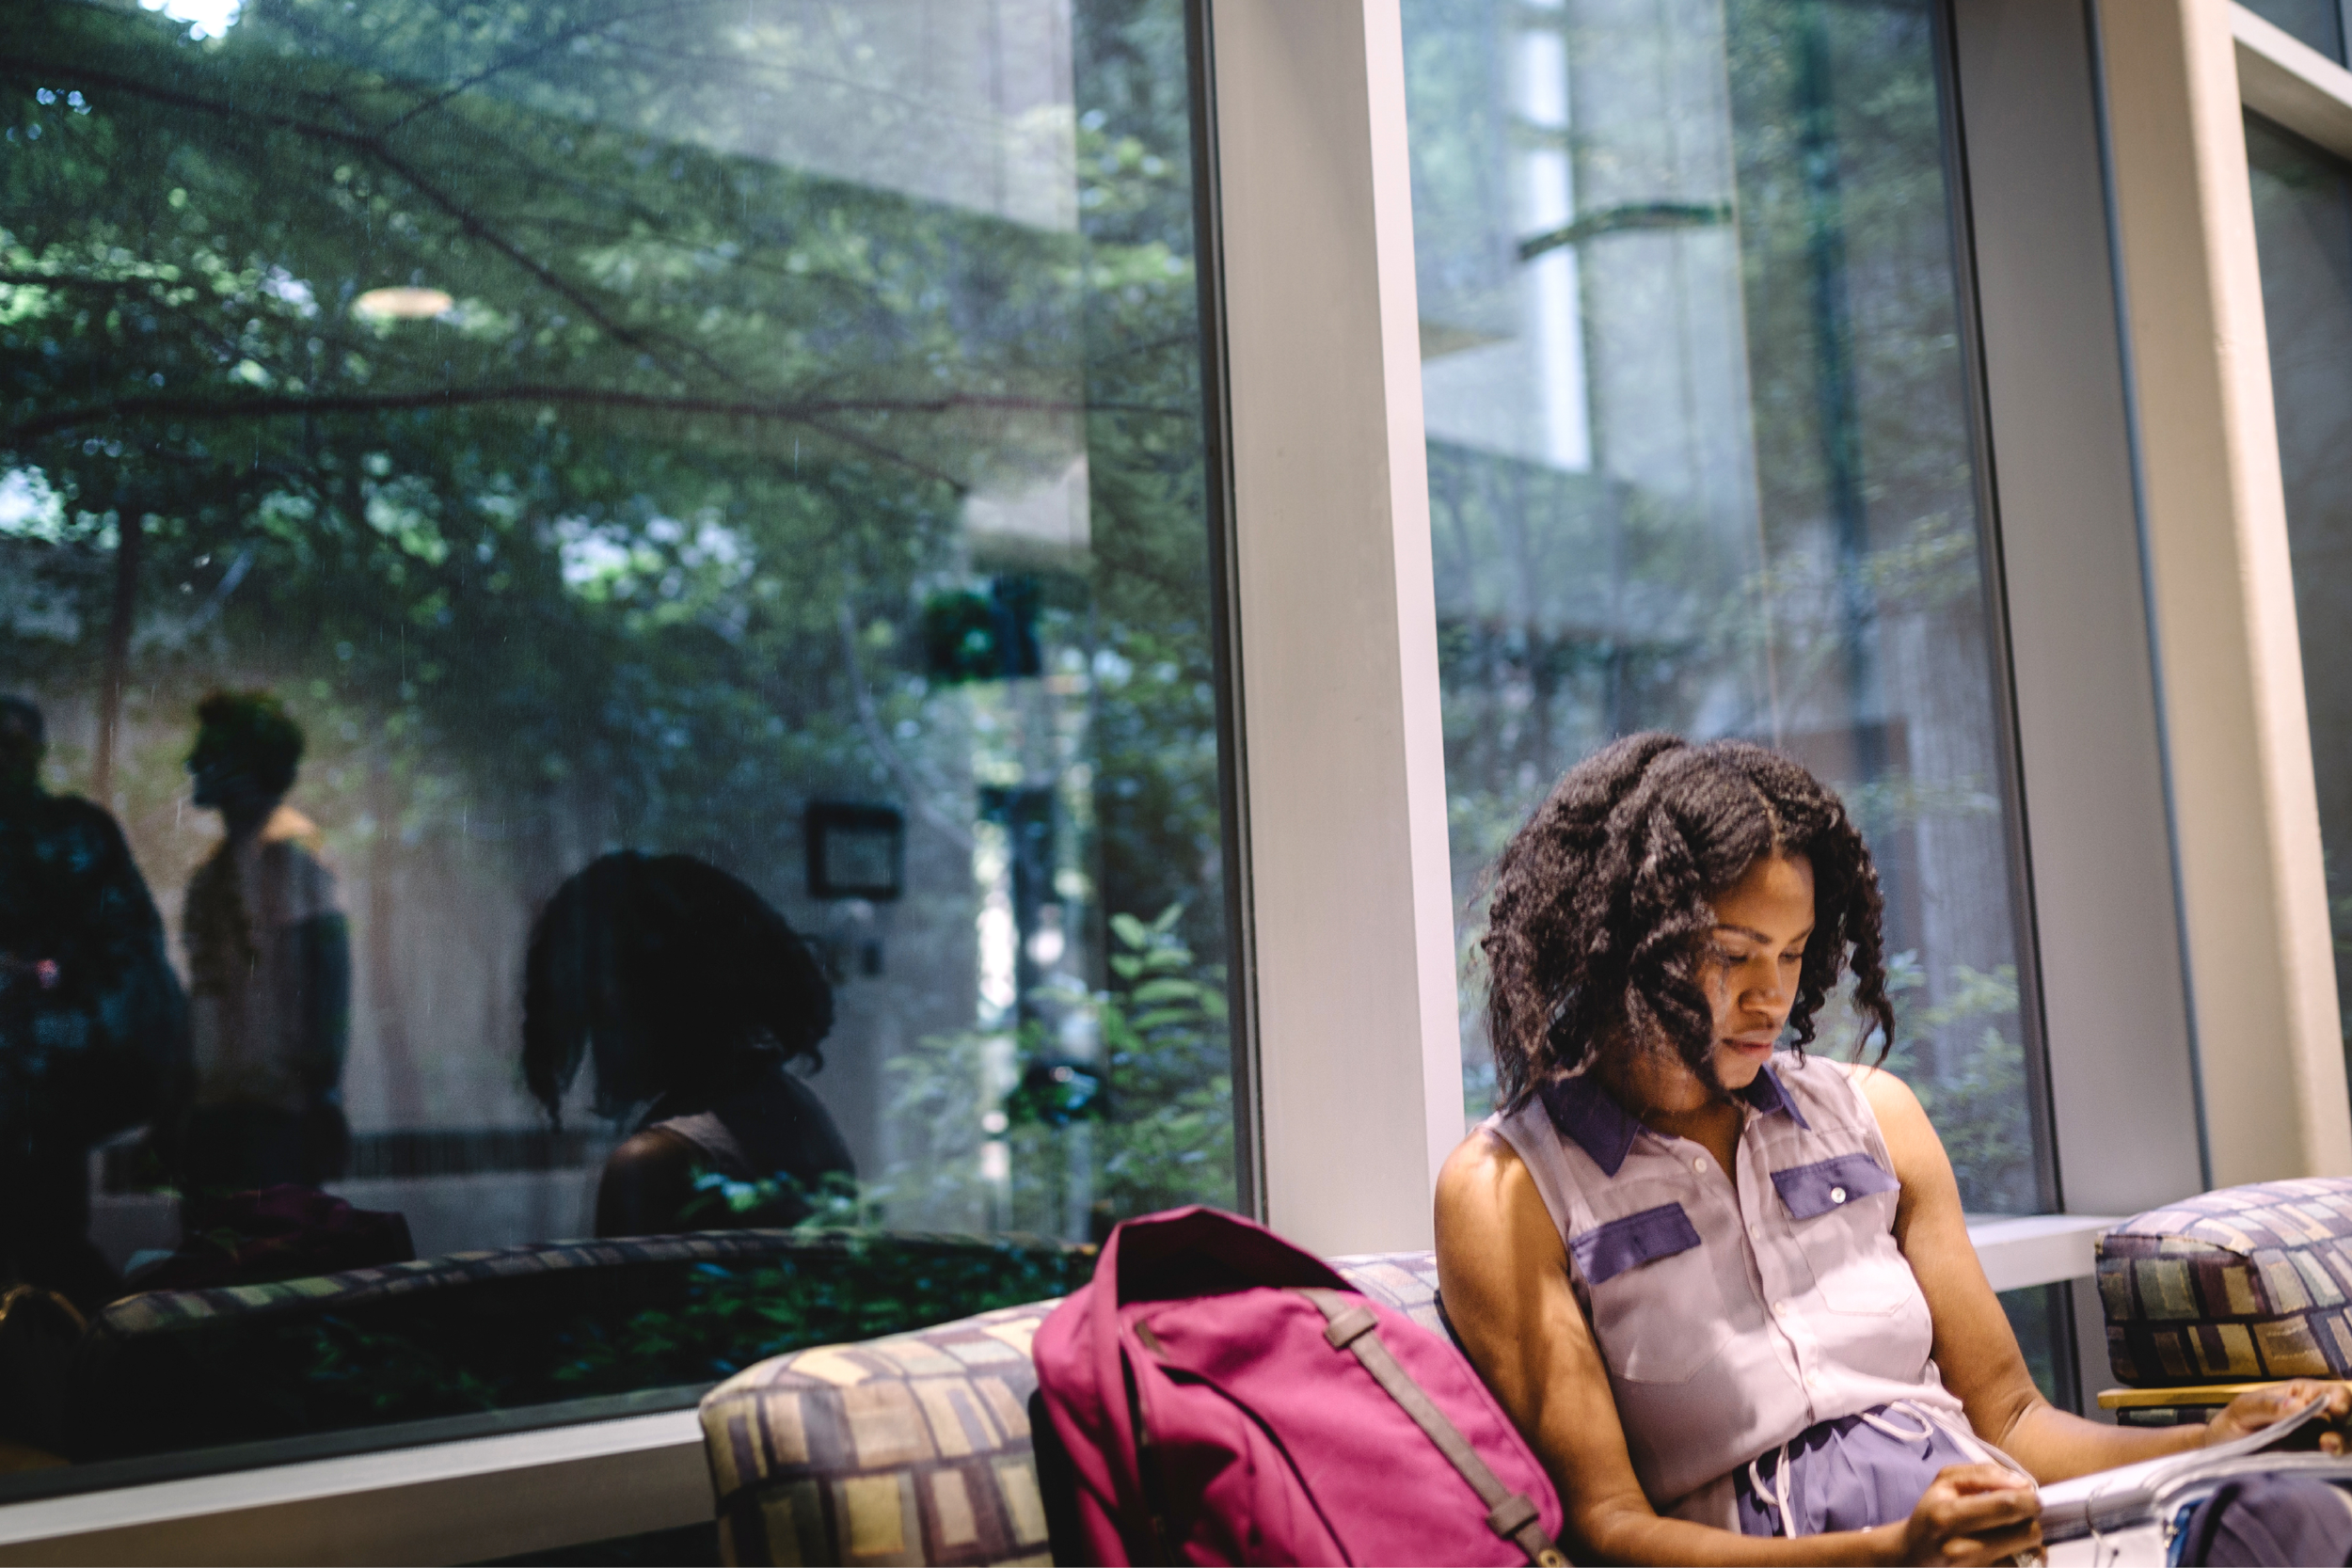 Female student studying on campus indoors